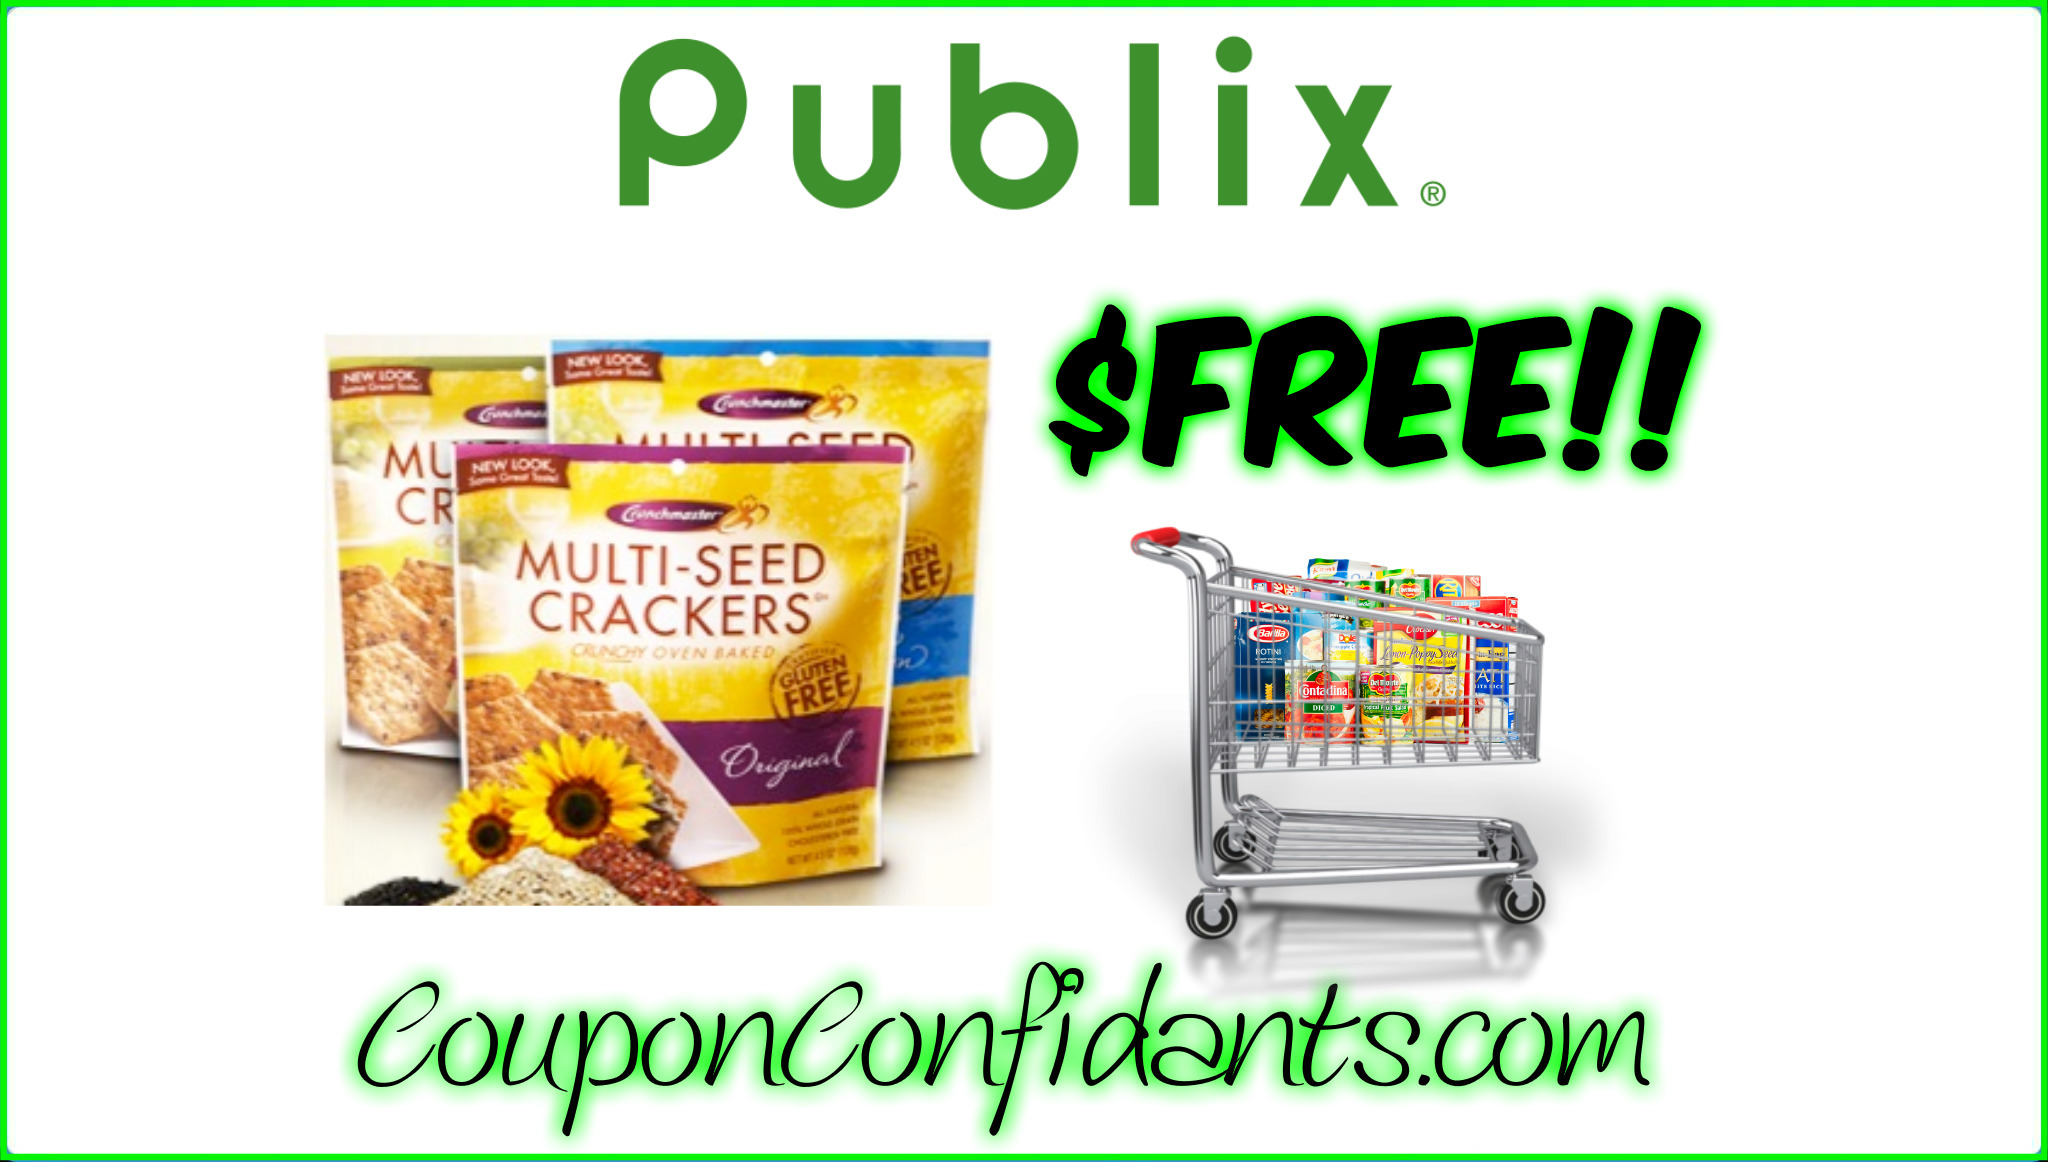 Crunchmaster Crackers FREE at Publix! NEW Deal!